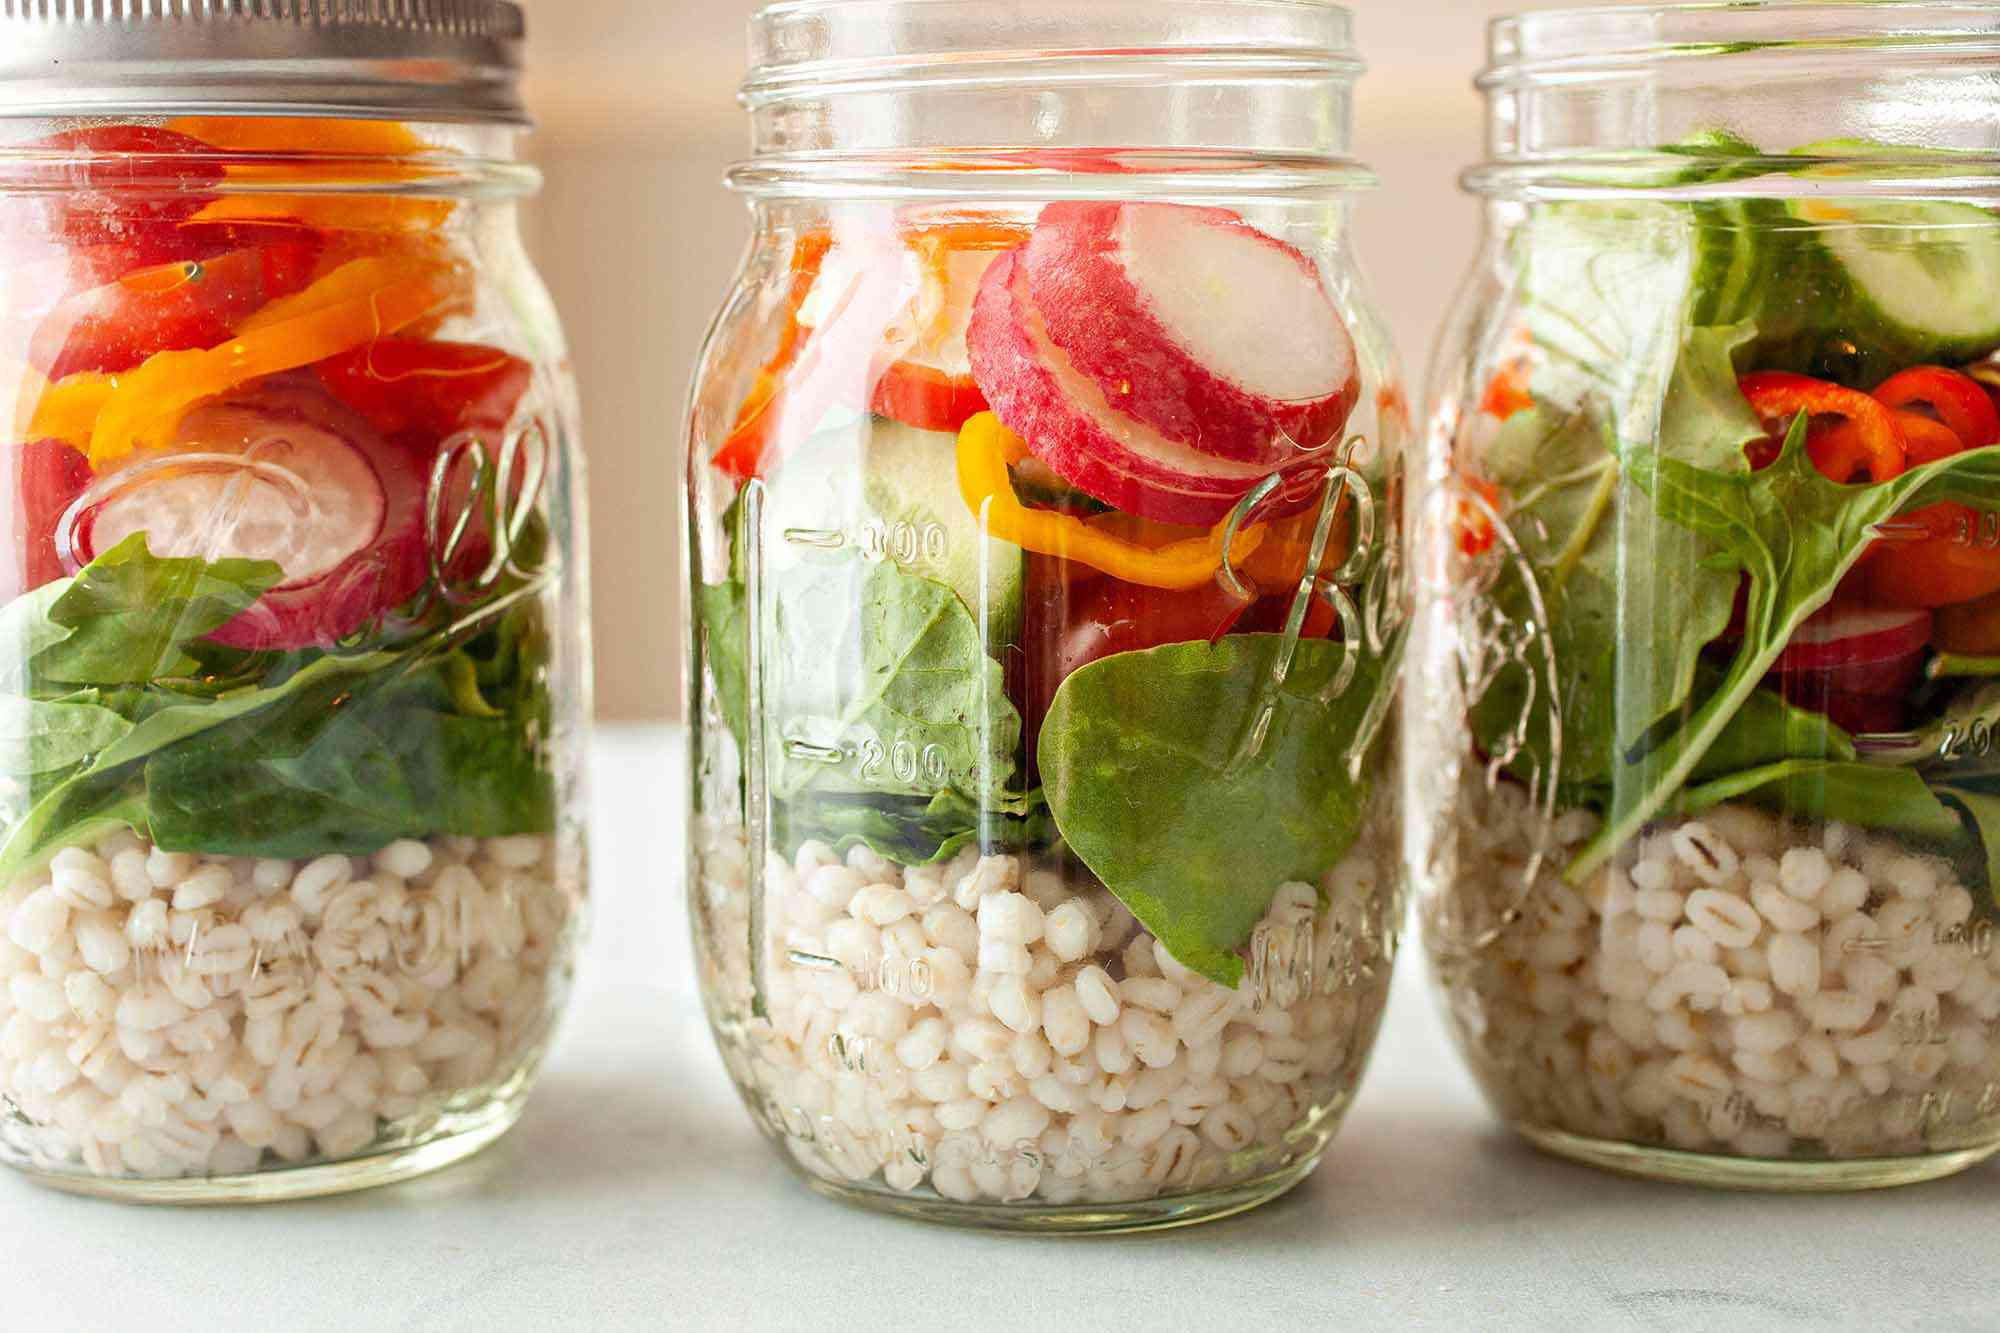 How To Cook Barley - three open jars of grains and veggies